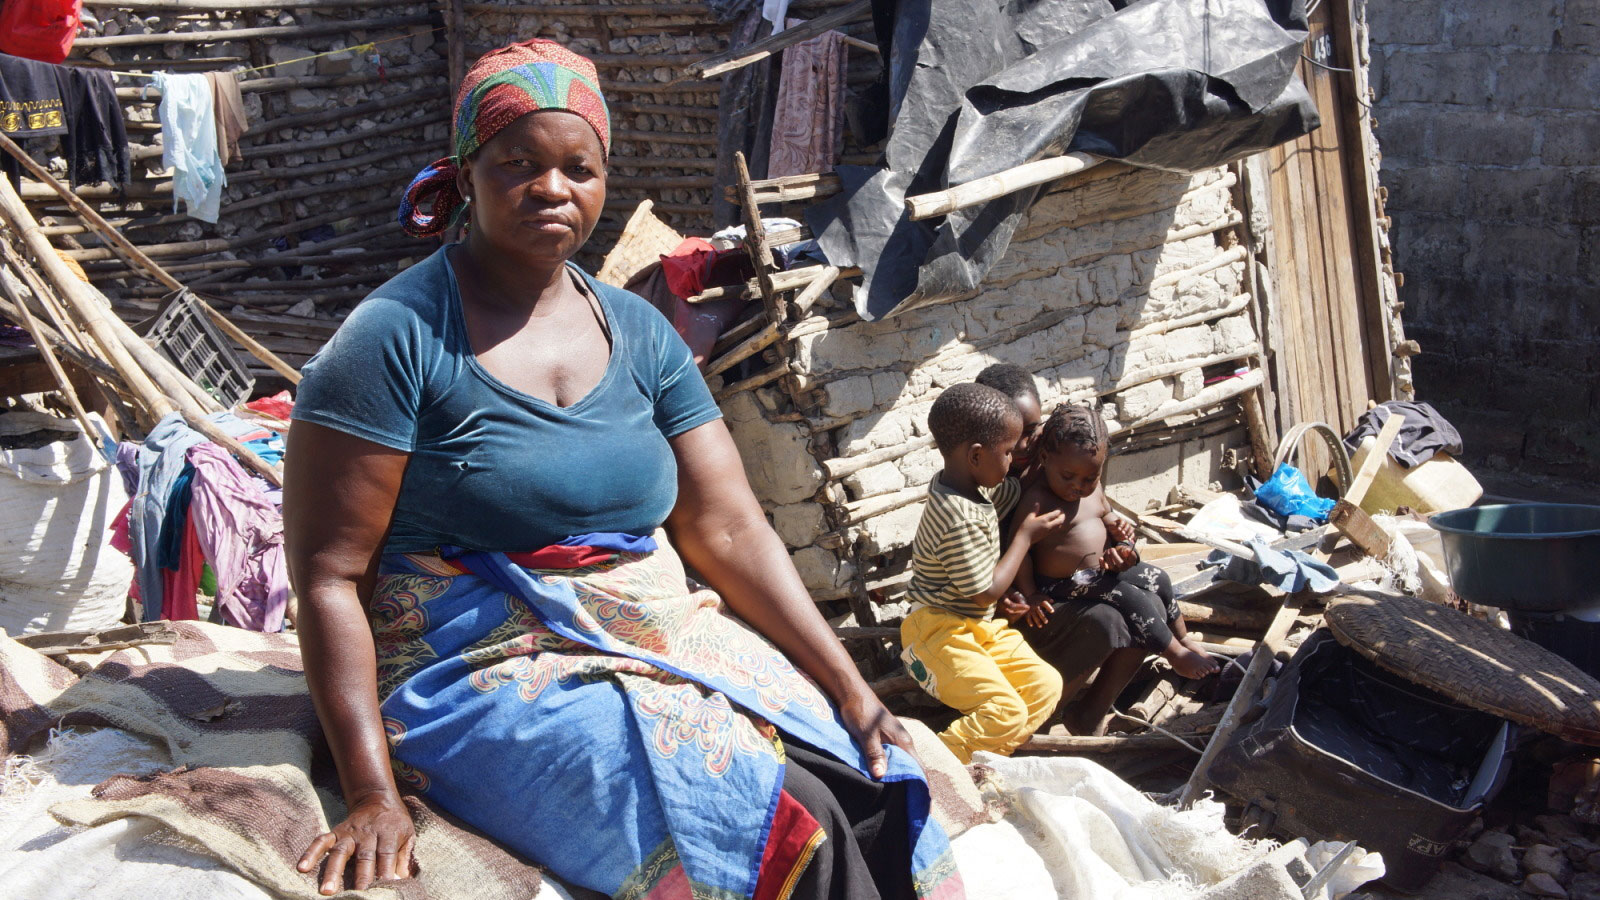 Mozambique | Bolstering support in Beira's poverty-stricken communities